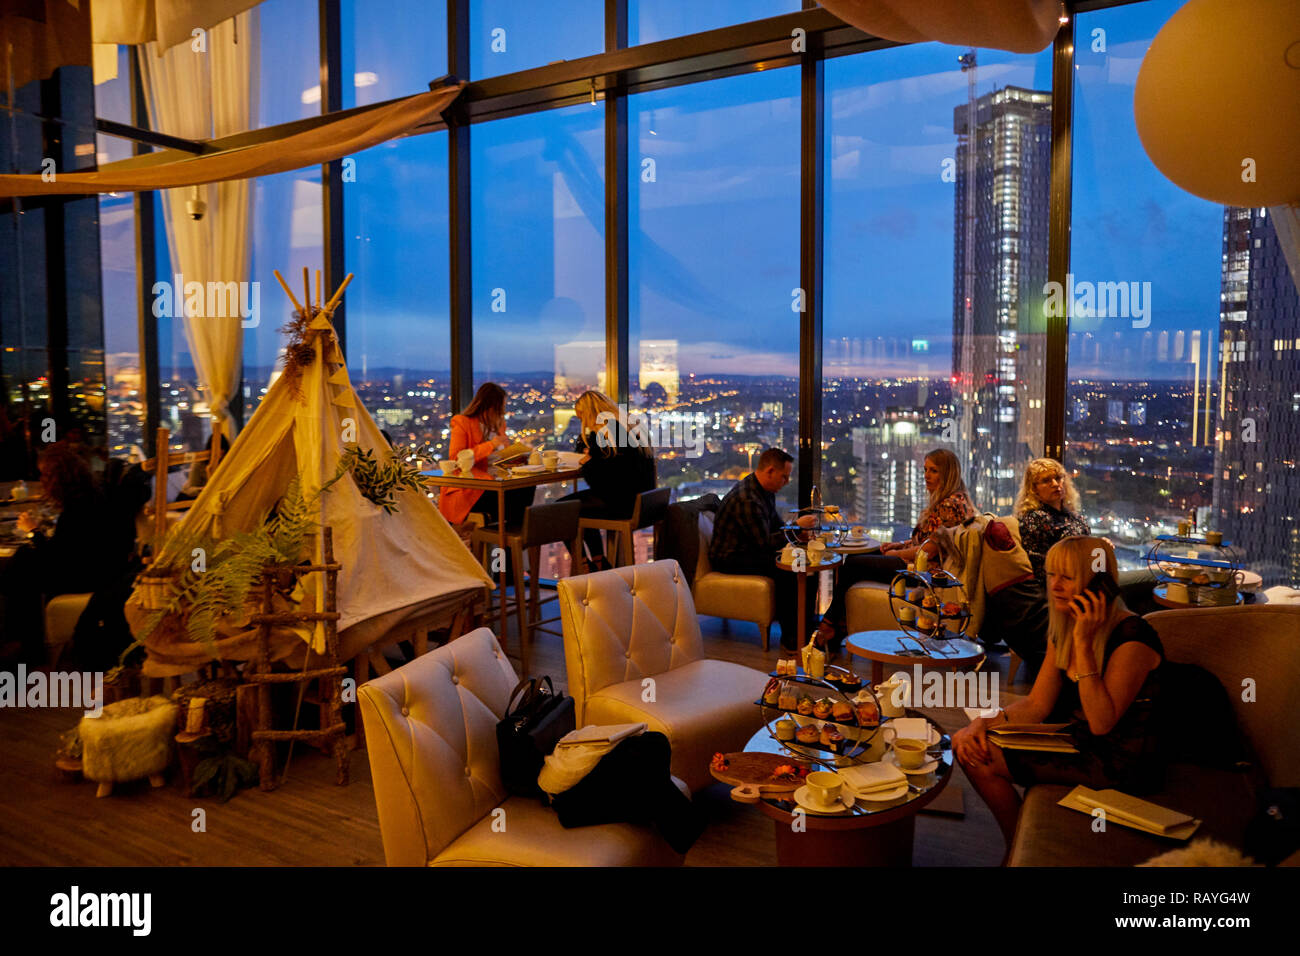 Manchester at night inside cloud 23 - Stock Image